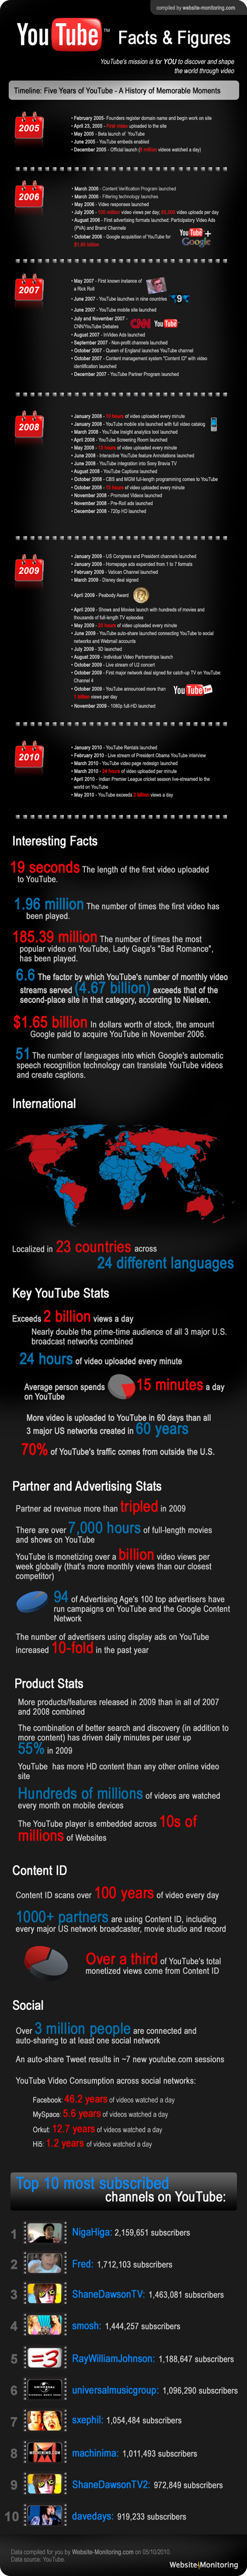 YouTube anniversary infographic